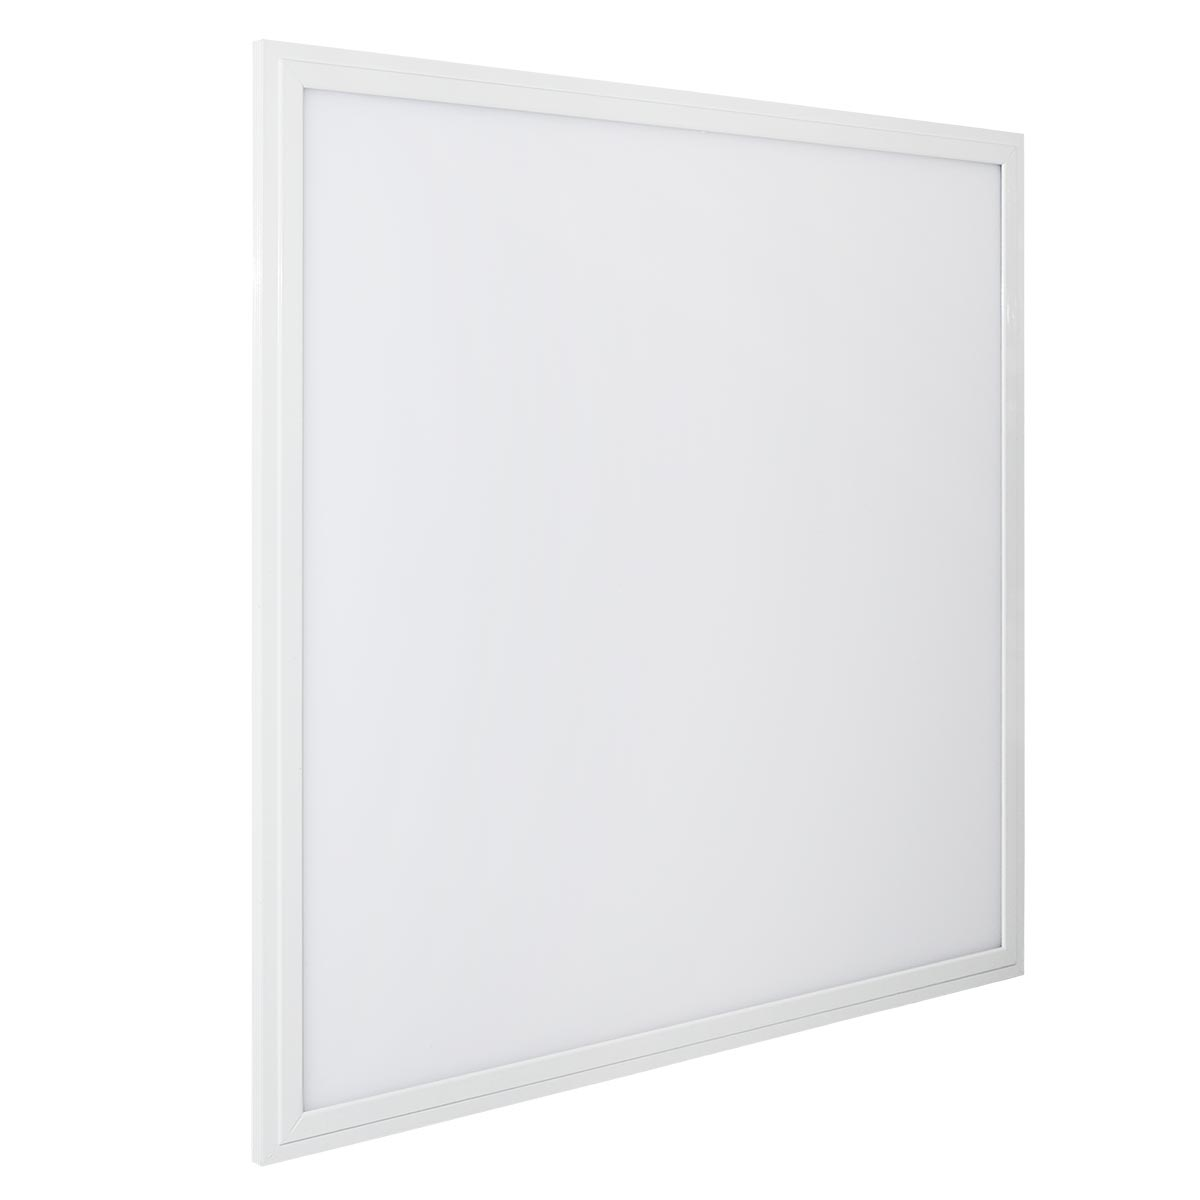 LED Light Panel 624x624 Weiss 40W 6500K 4'600lm UGR19 IP20